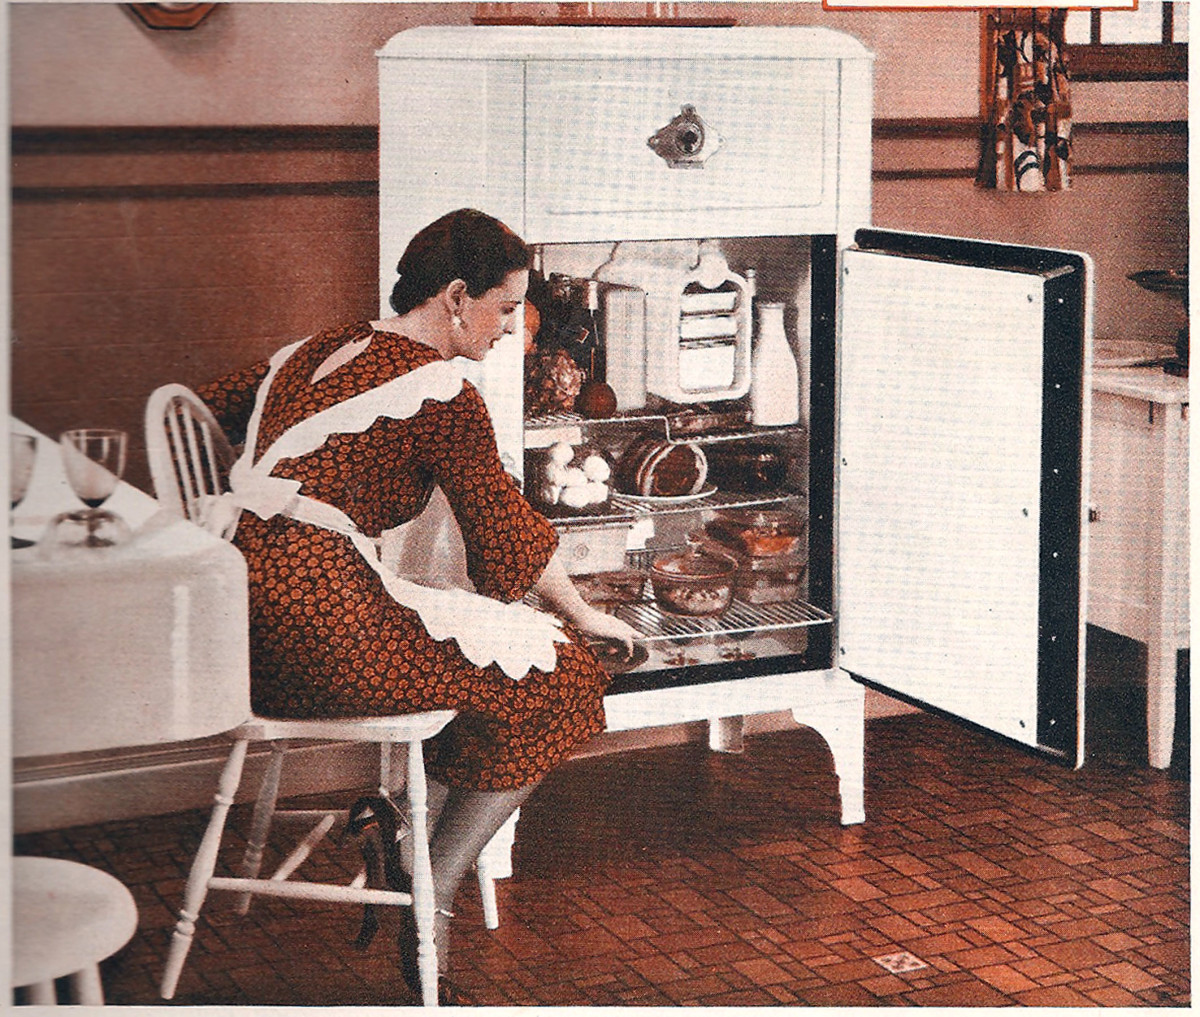 Vintage Kitchen Appliances of the 1930s